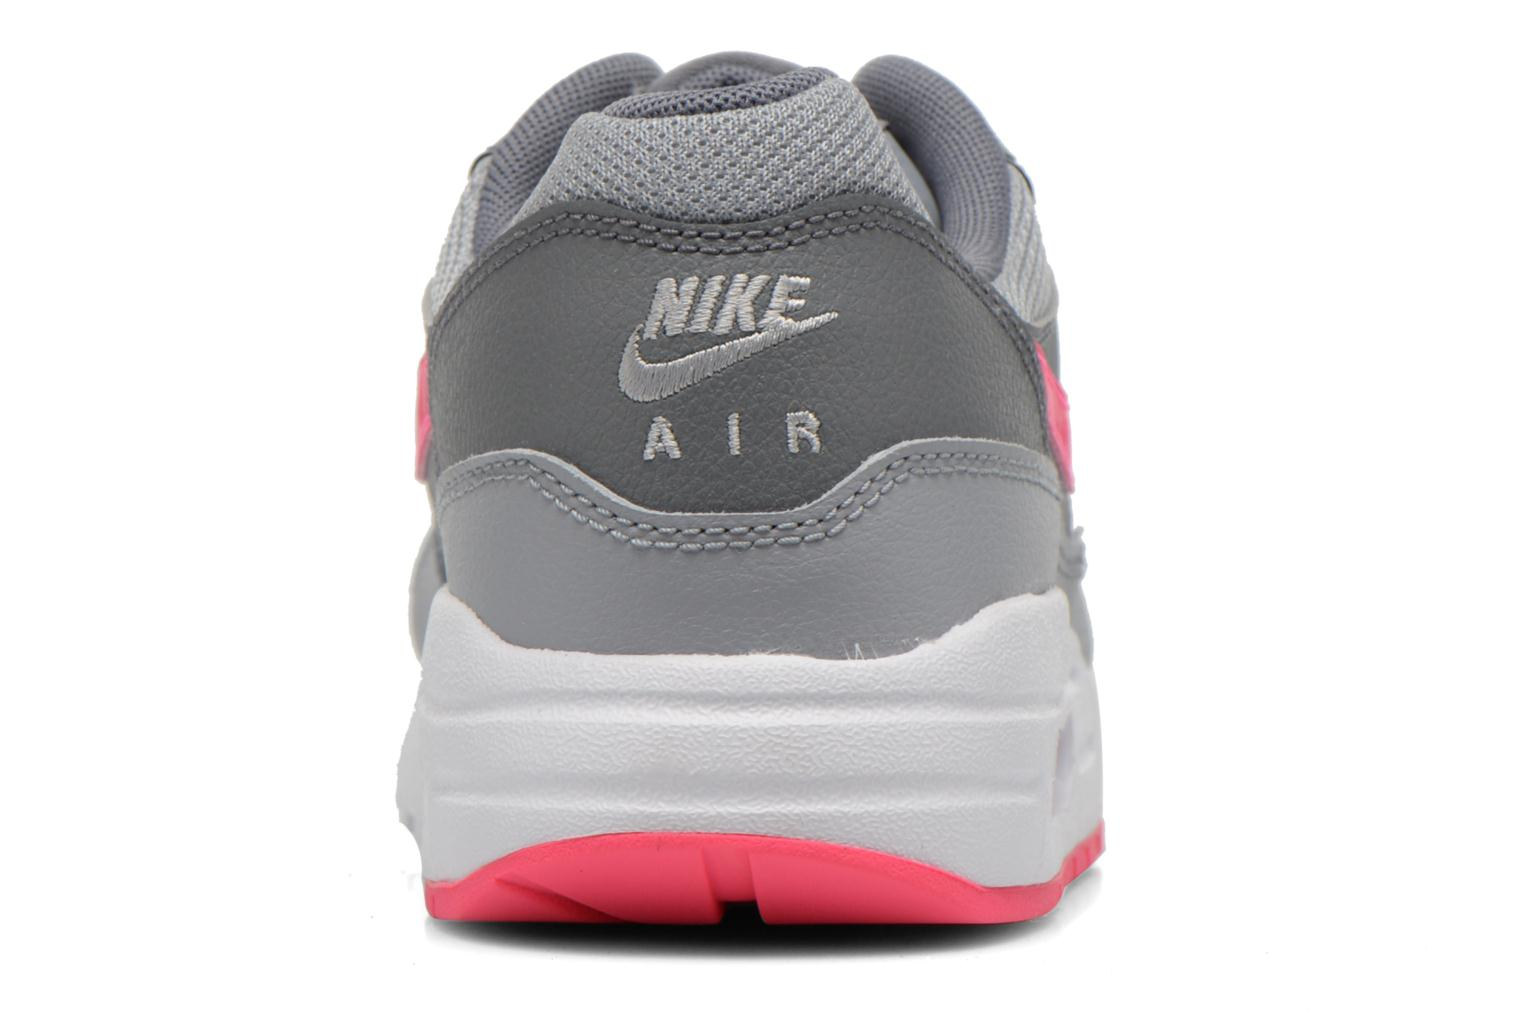 AIR MAX 1 (GS) Wolf Grey/Hypr Pink-Cl Gry-Wht